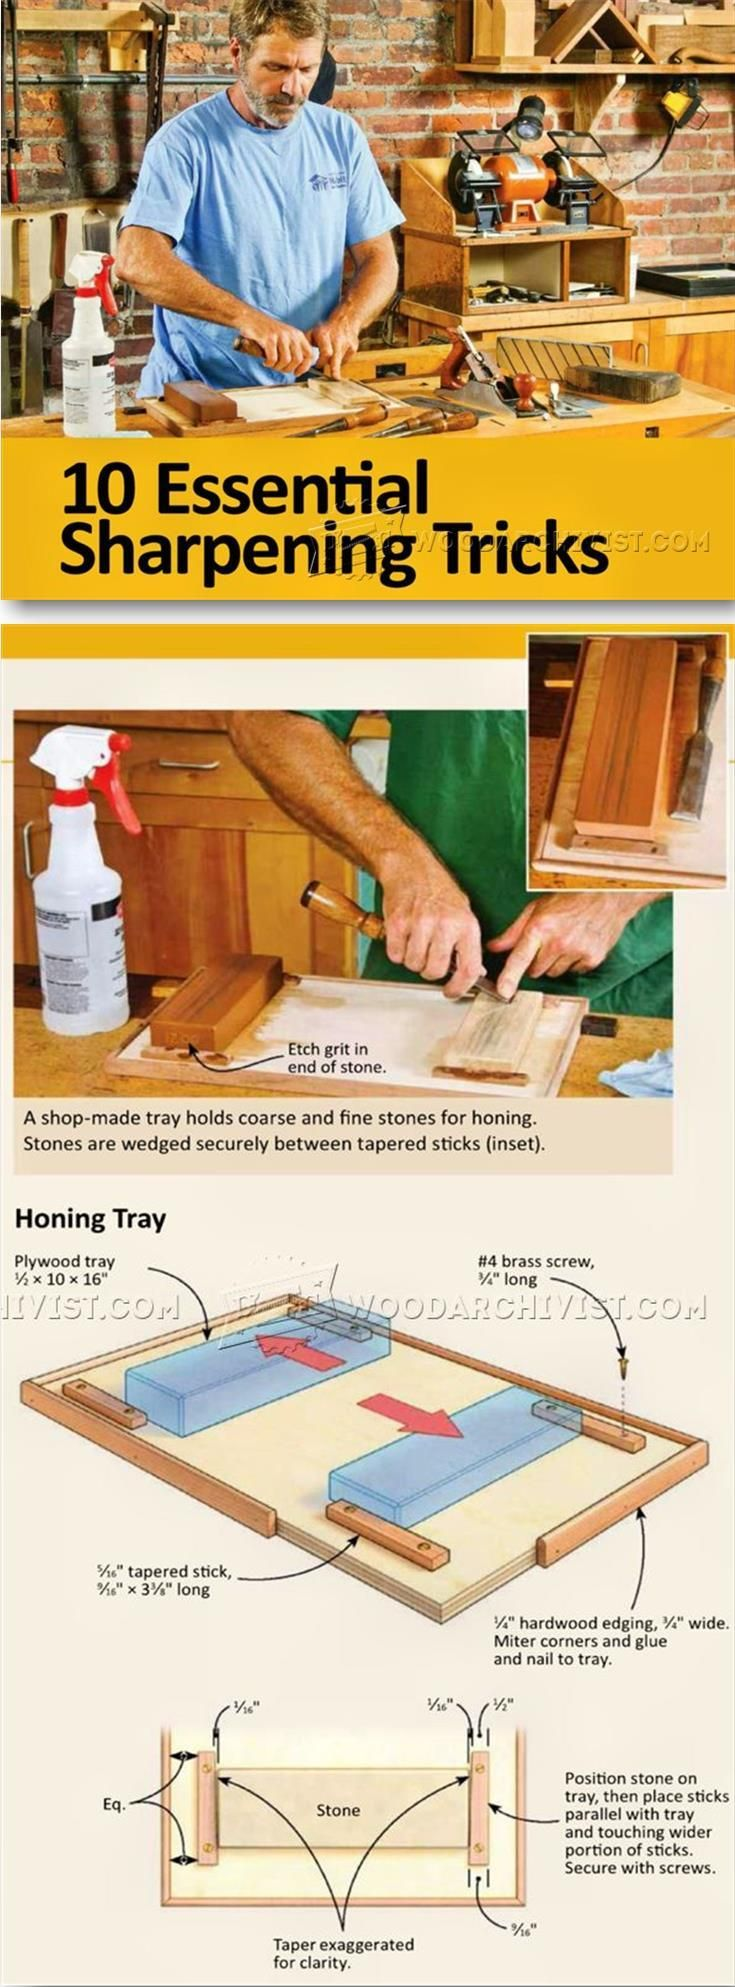 Woodworking Tool Sharpening - Sharpening Tips, Jigs and Techniques   WoodArchivist.com